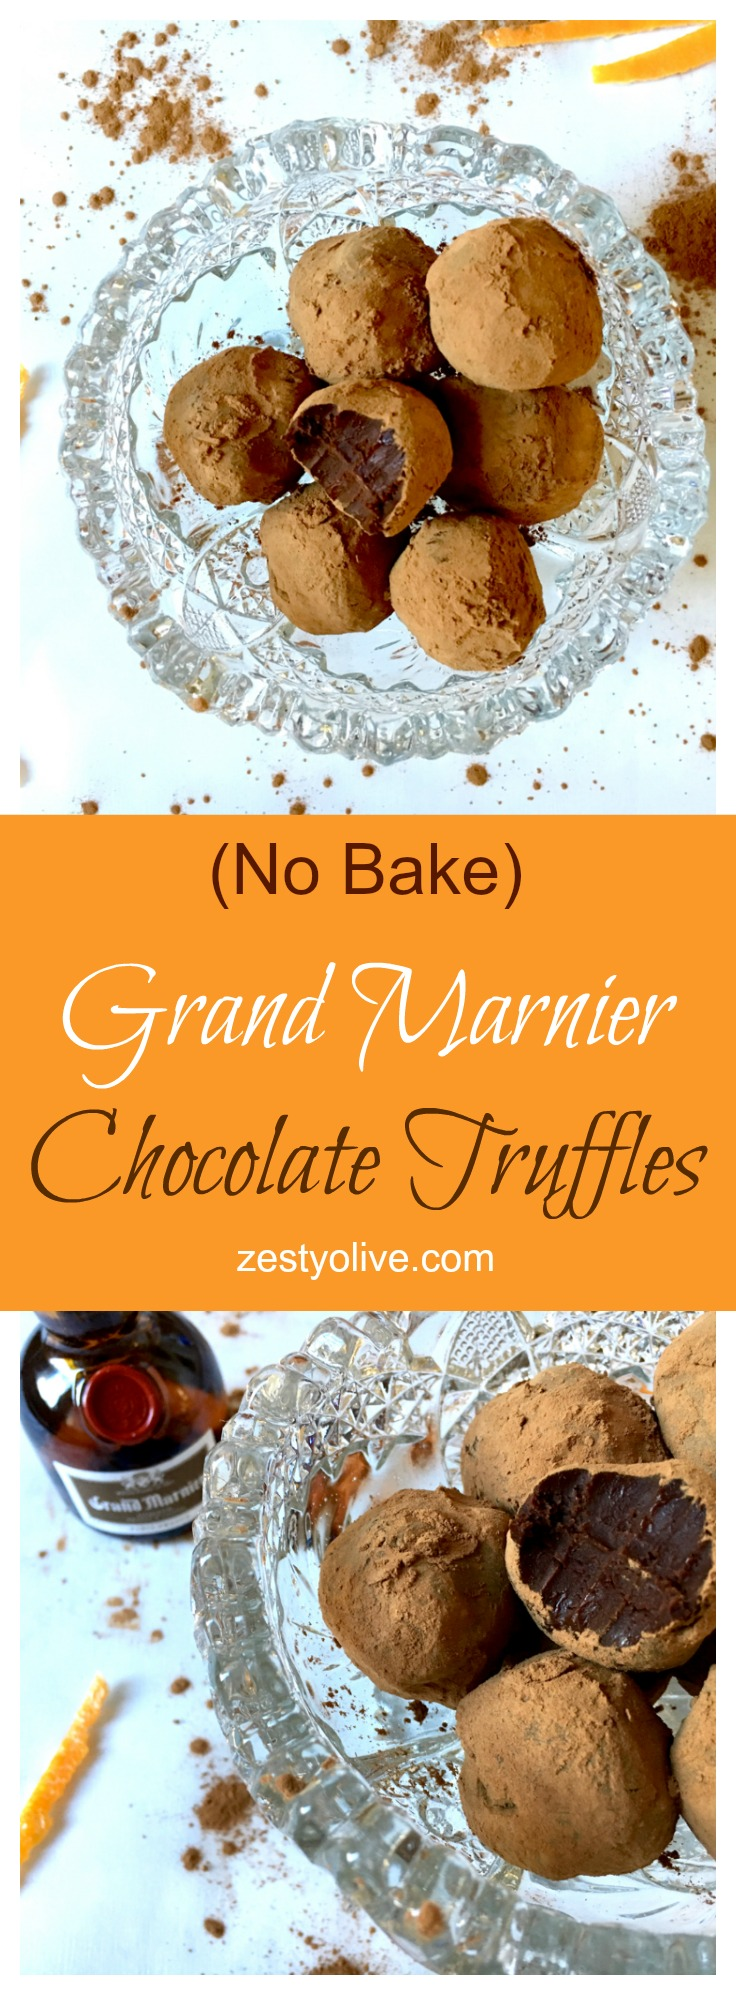 No Bake Grand Marnier Chocolate Truffles